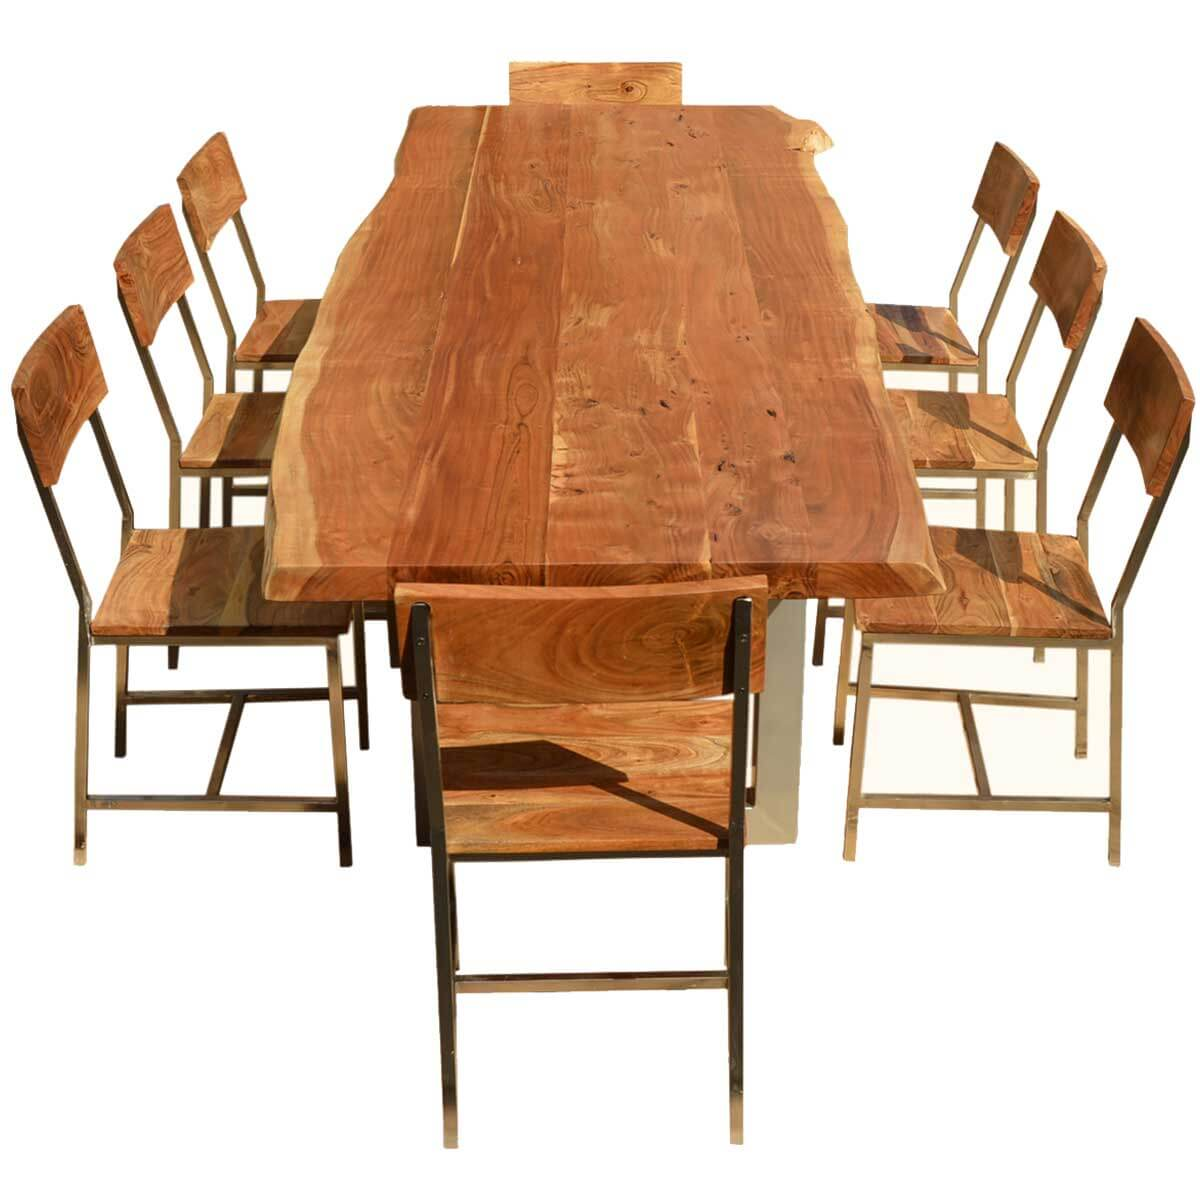 Acacia wood dining table and chairs roscrea dining table for Table queens acacia